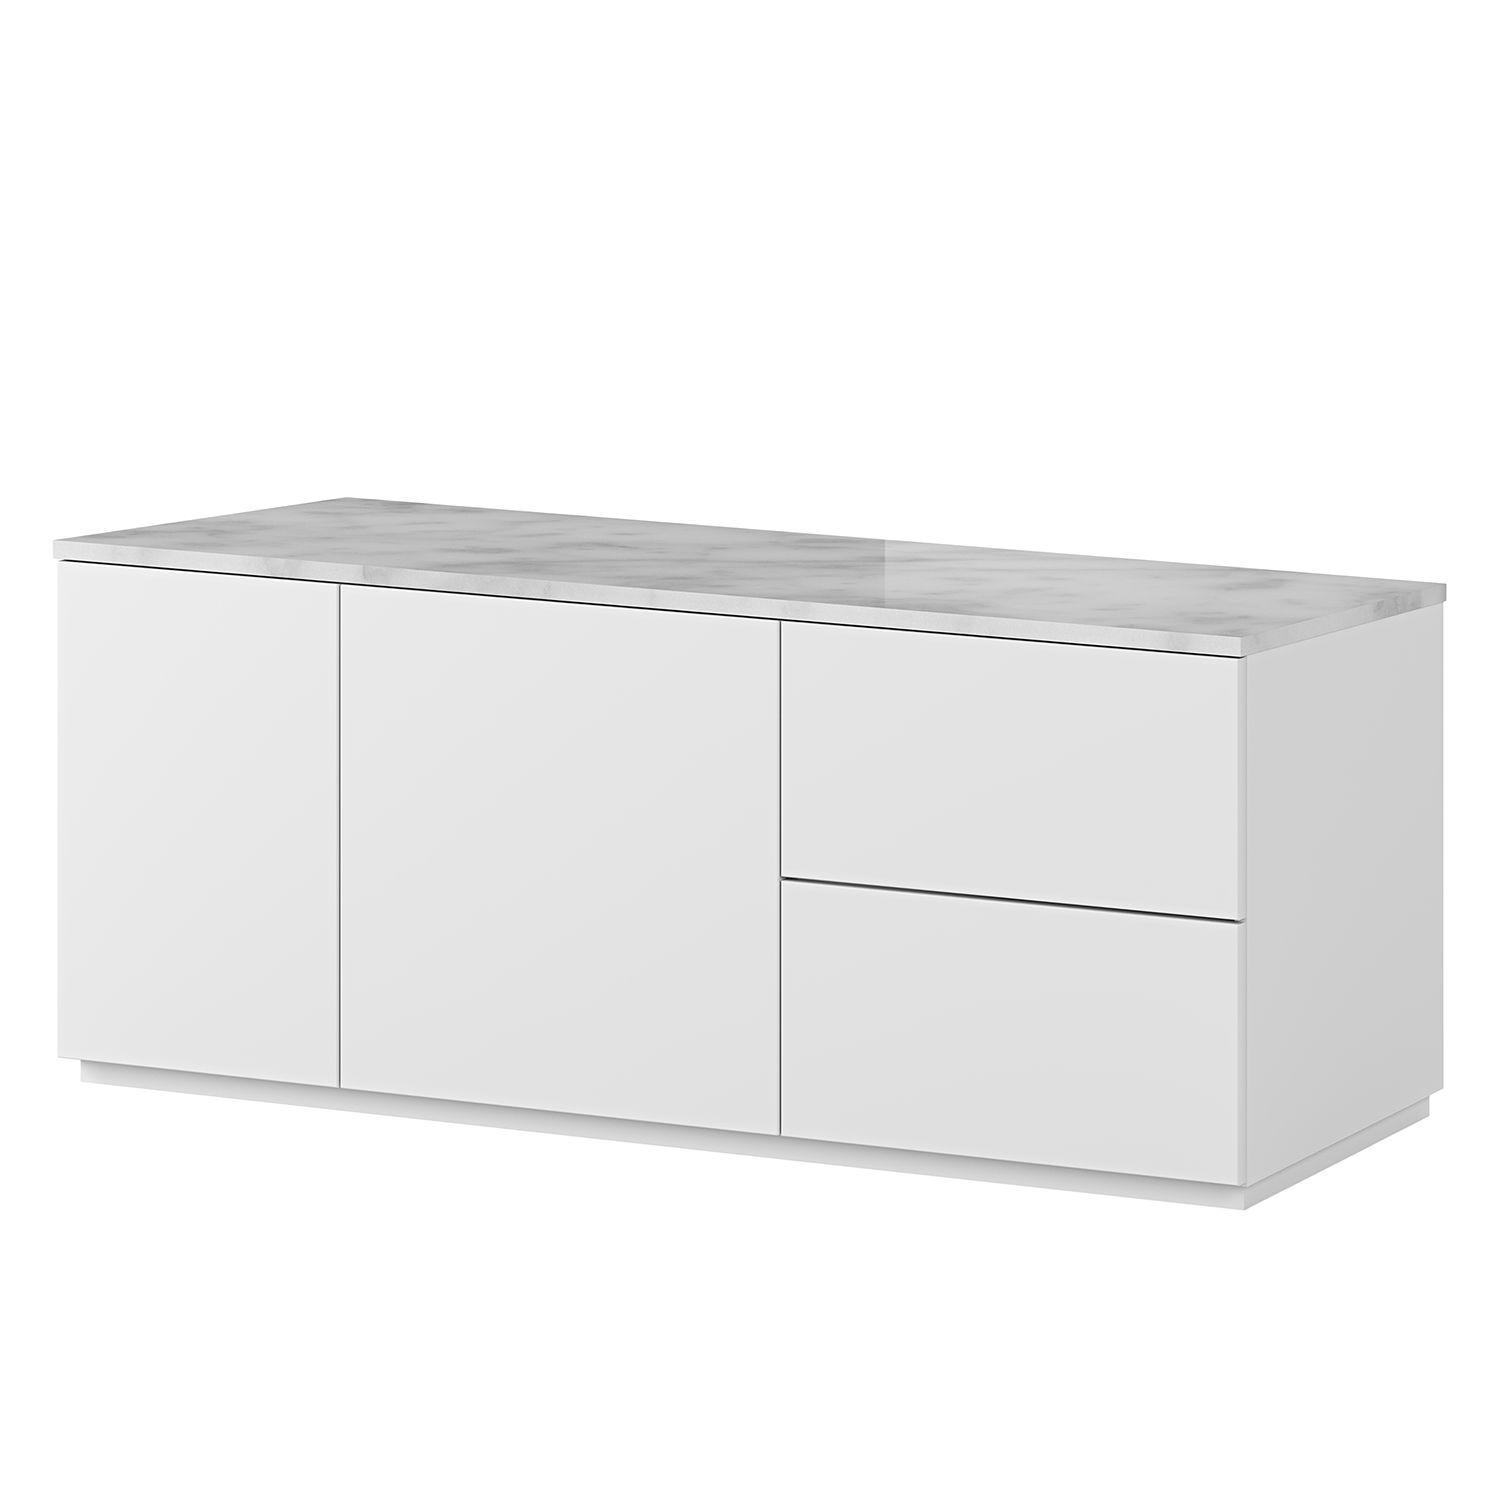 Sideboard Join I Sideboard Modern Hohes Sideboard Kommode Weiß Hochglanz